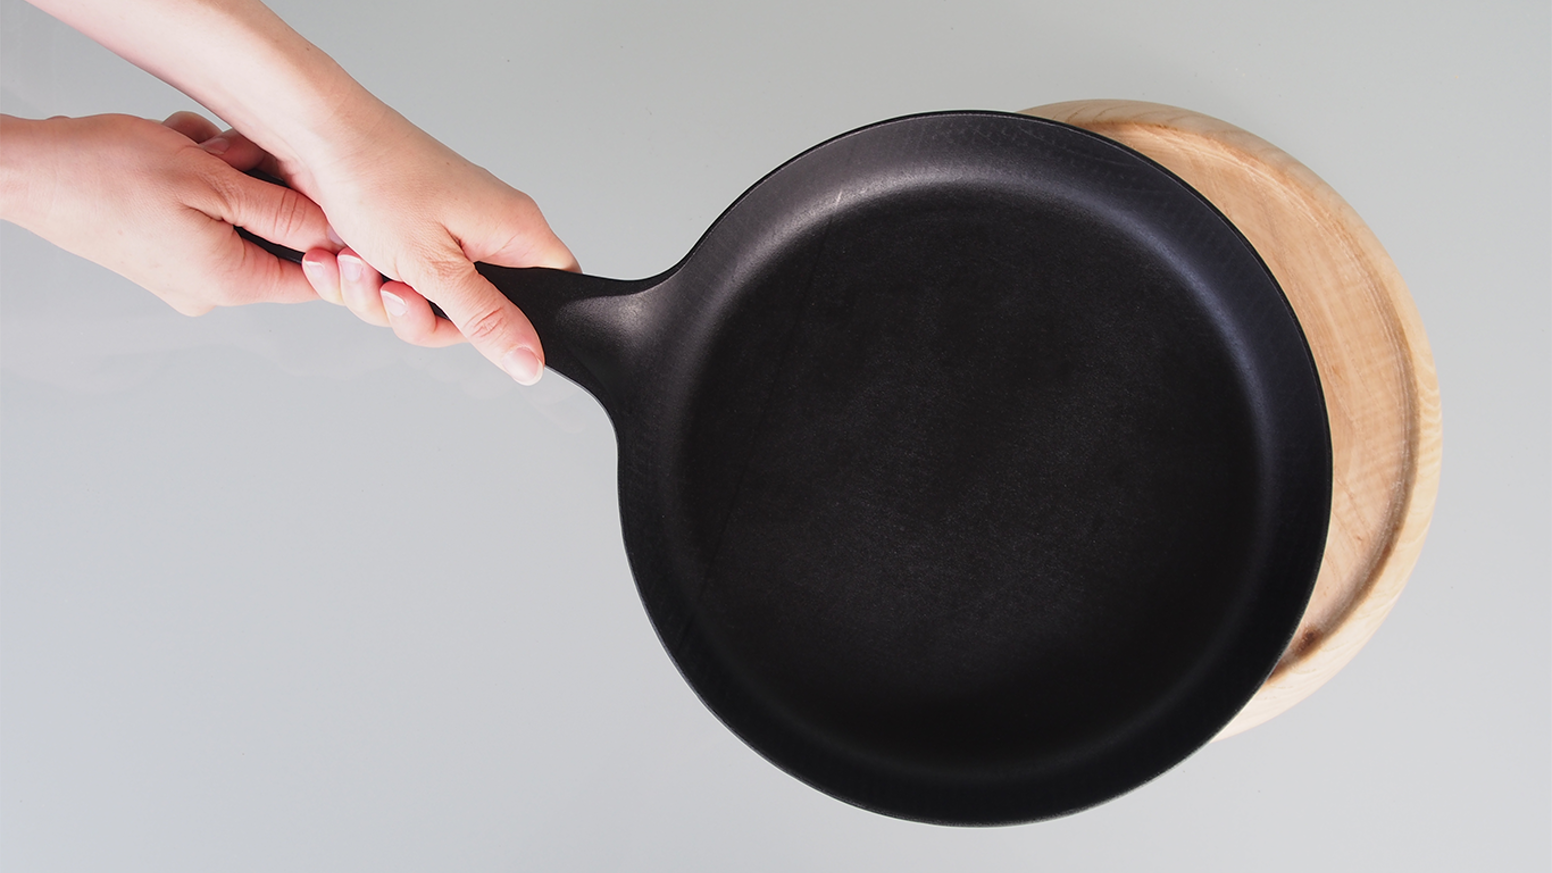 Cast iron cookware for performance and presentation – a longer handle, smooth surface, lightweight design, and hardwood accessories.